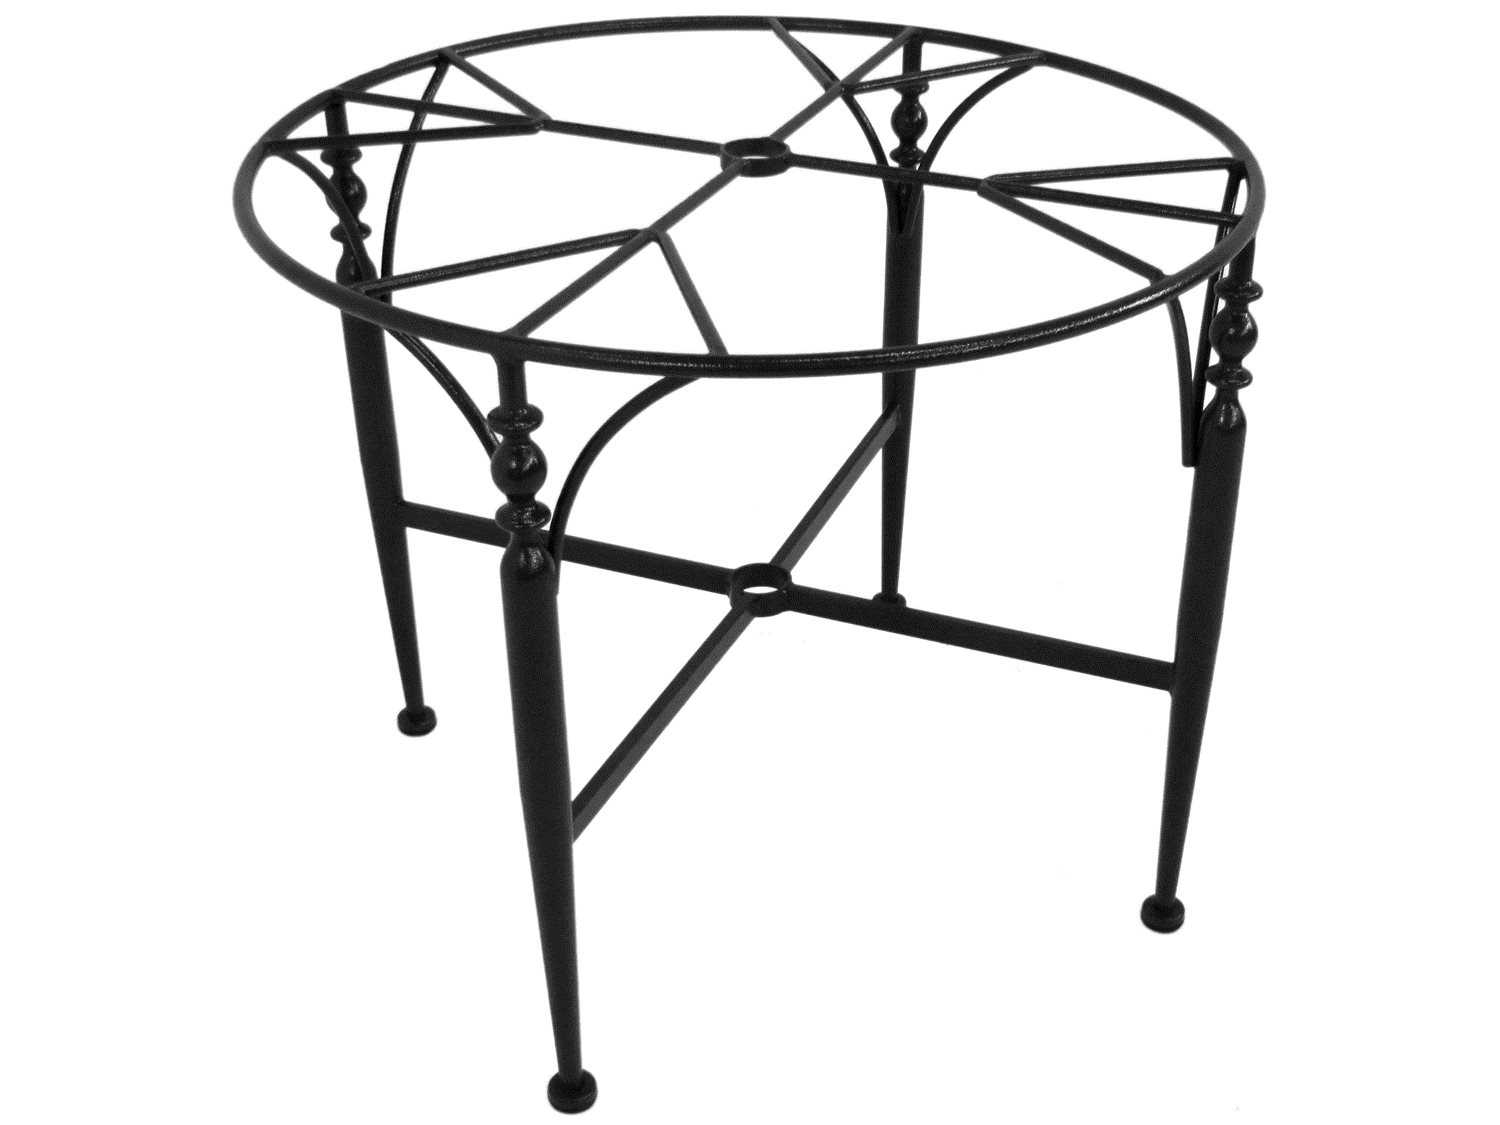 Meadowcraft Athens Wrought Iron Dining Room Table Base 3624837 01